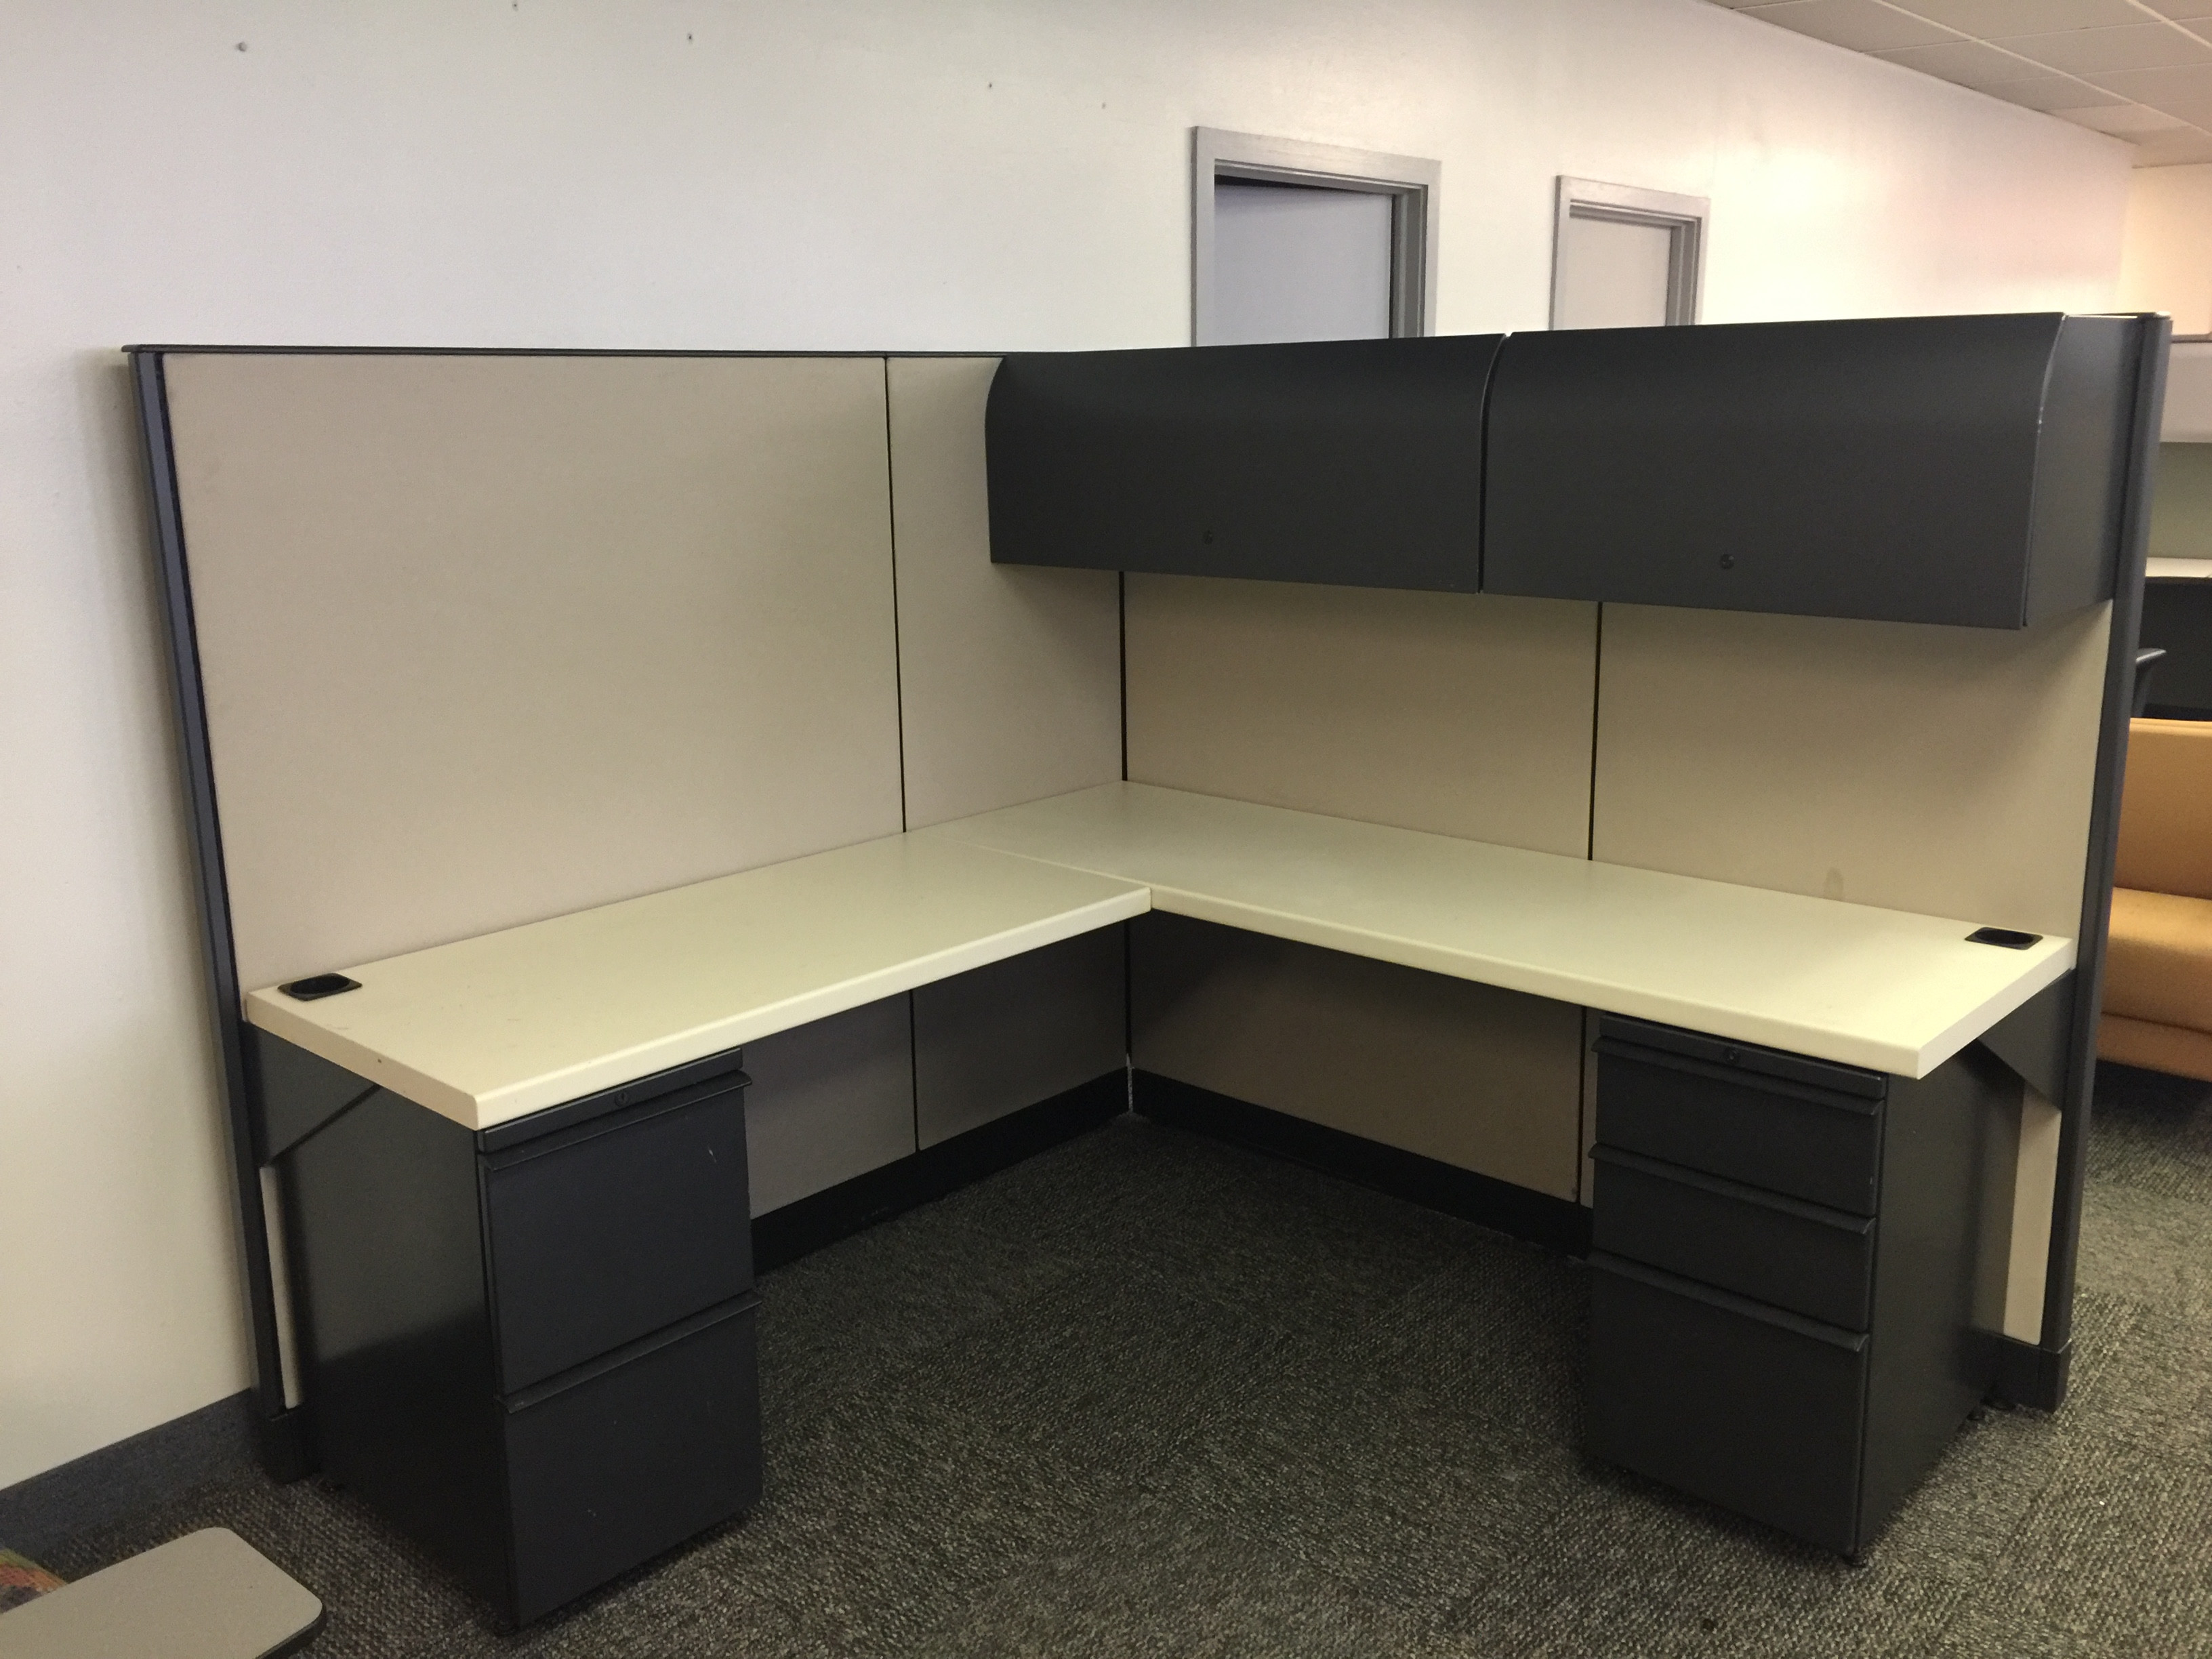 Best ideas about Wholesale Office Furniture . Save or Pin Wholesale Cubicles richfielduniversity Now.